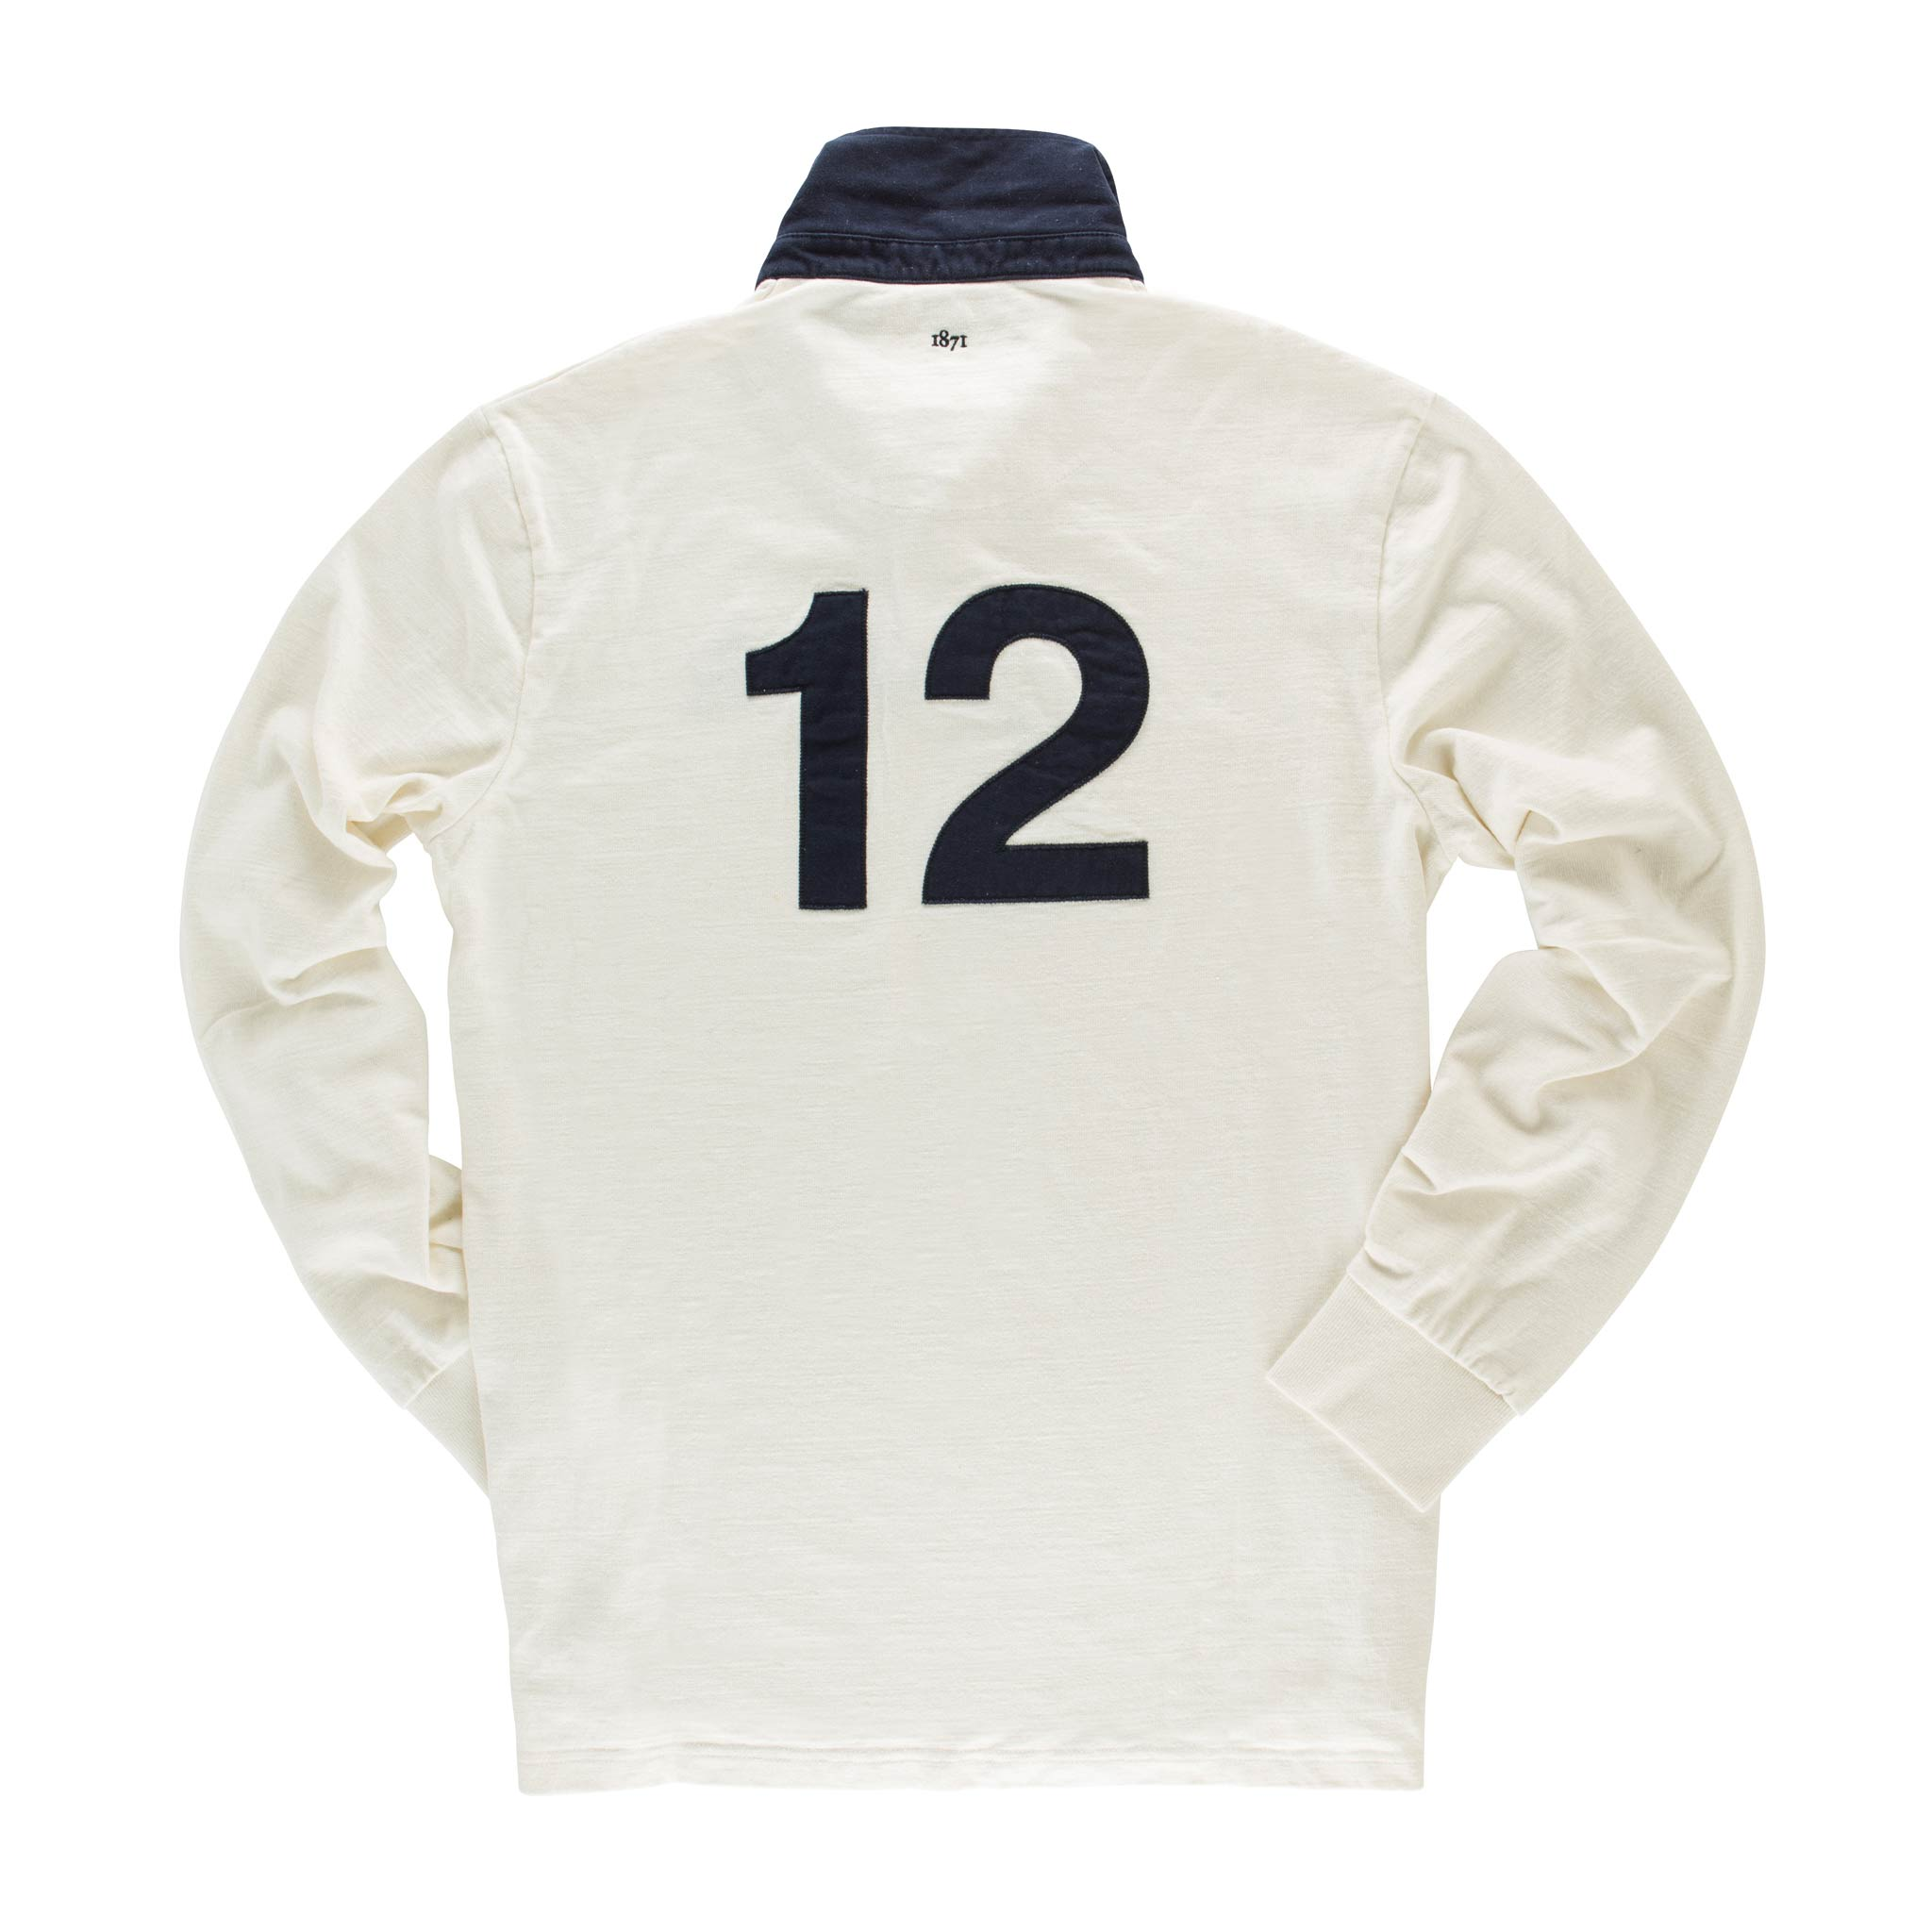 Queen's House 1871 Rugby Shirt - back